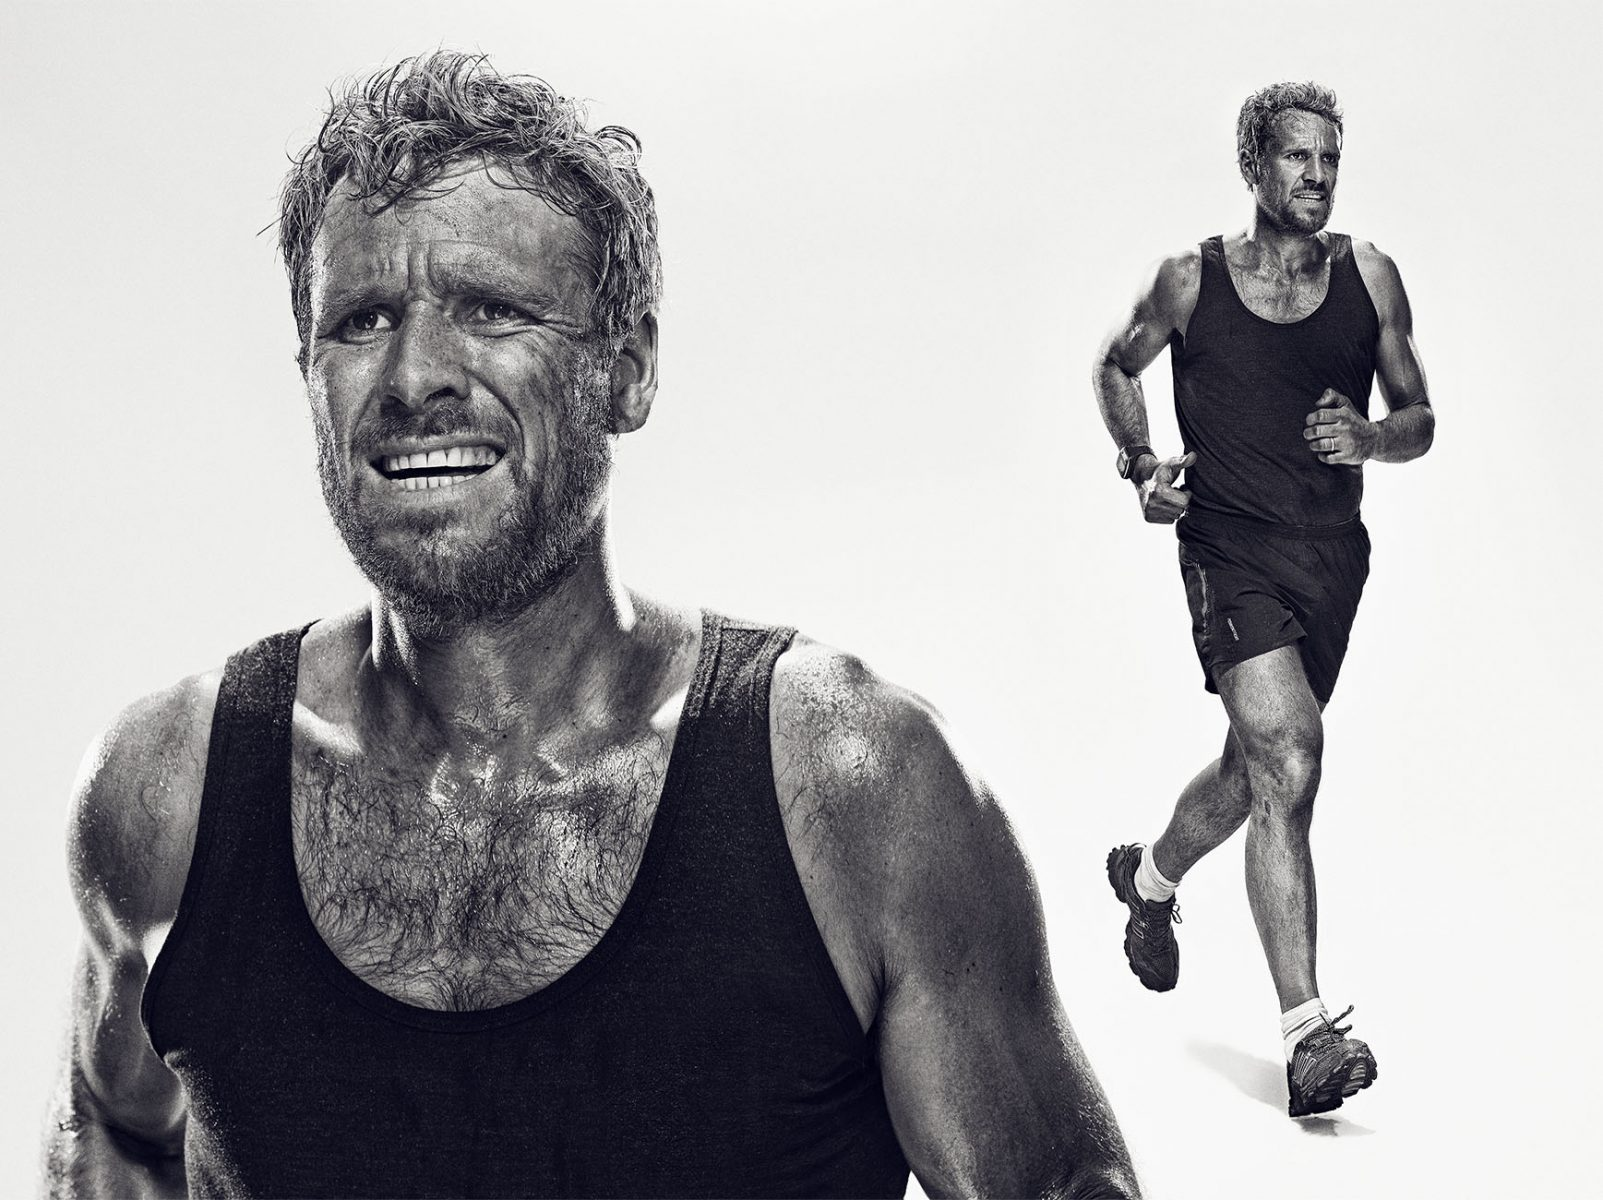 Discovery channel – James Cracknell